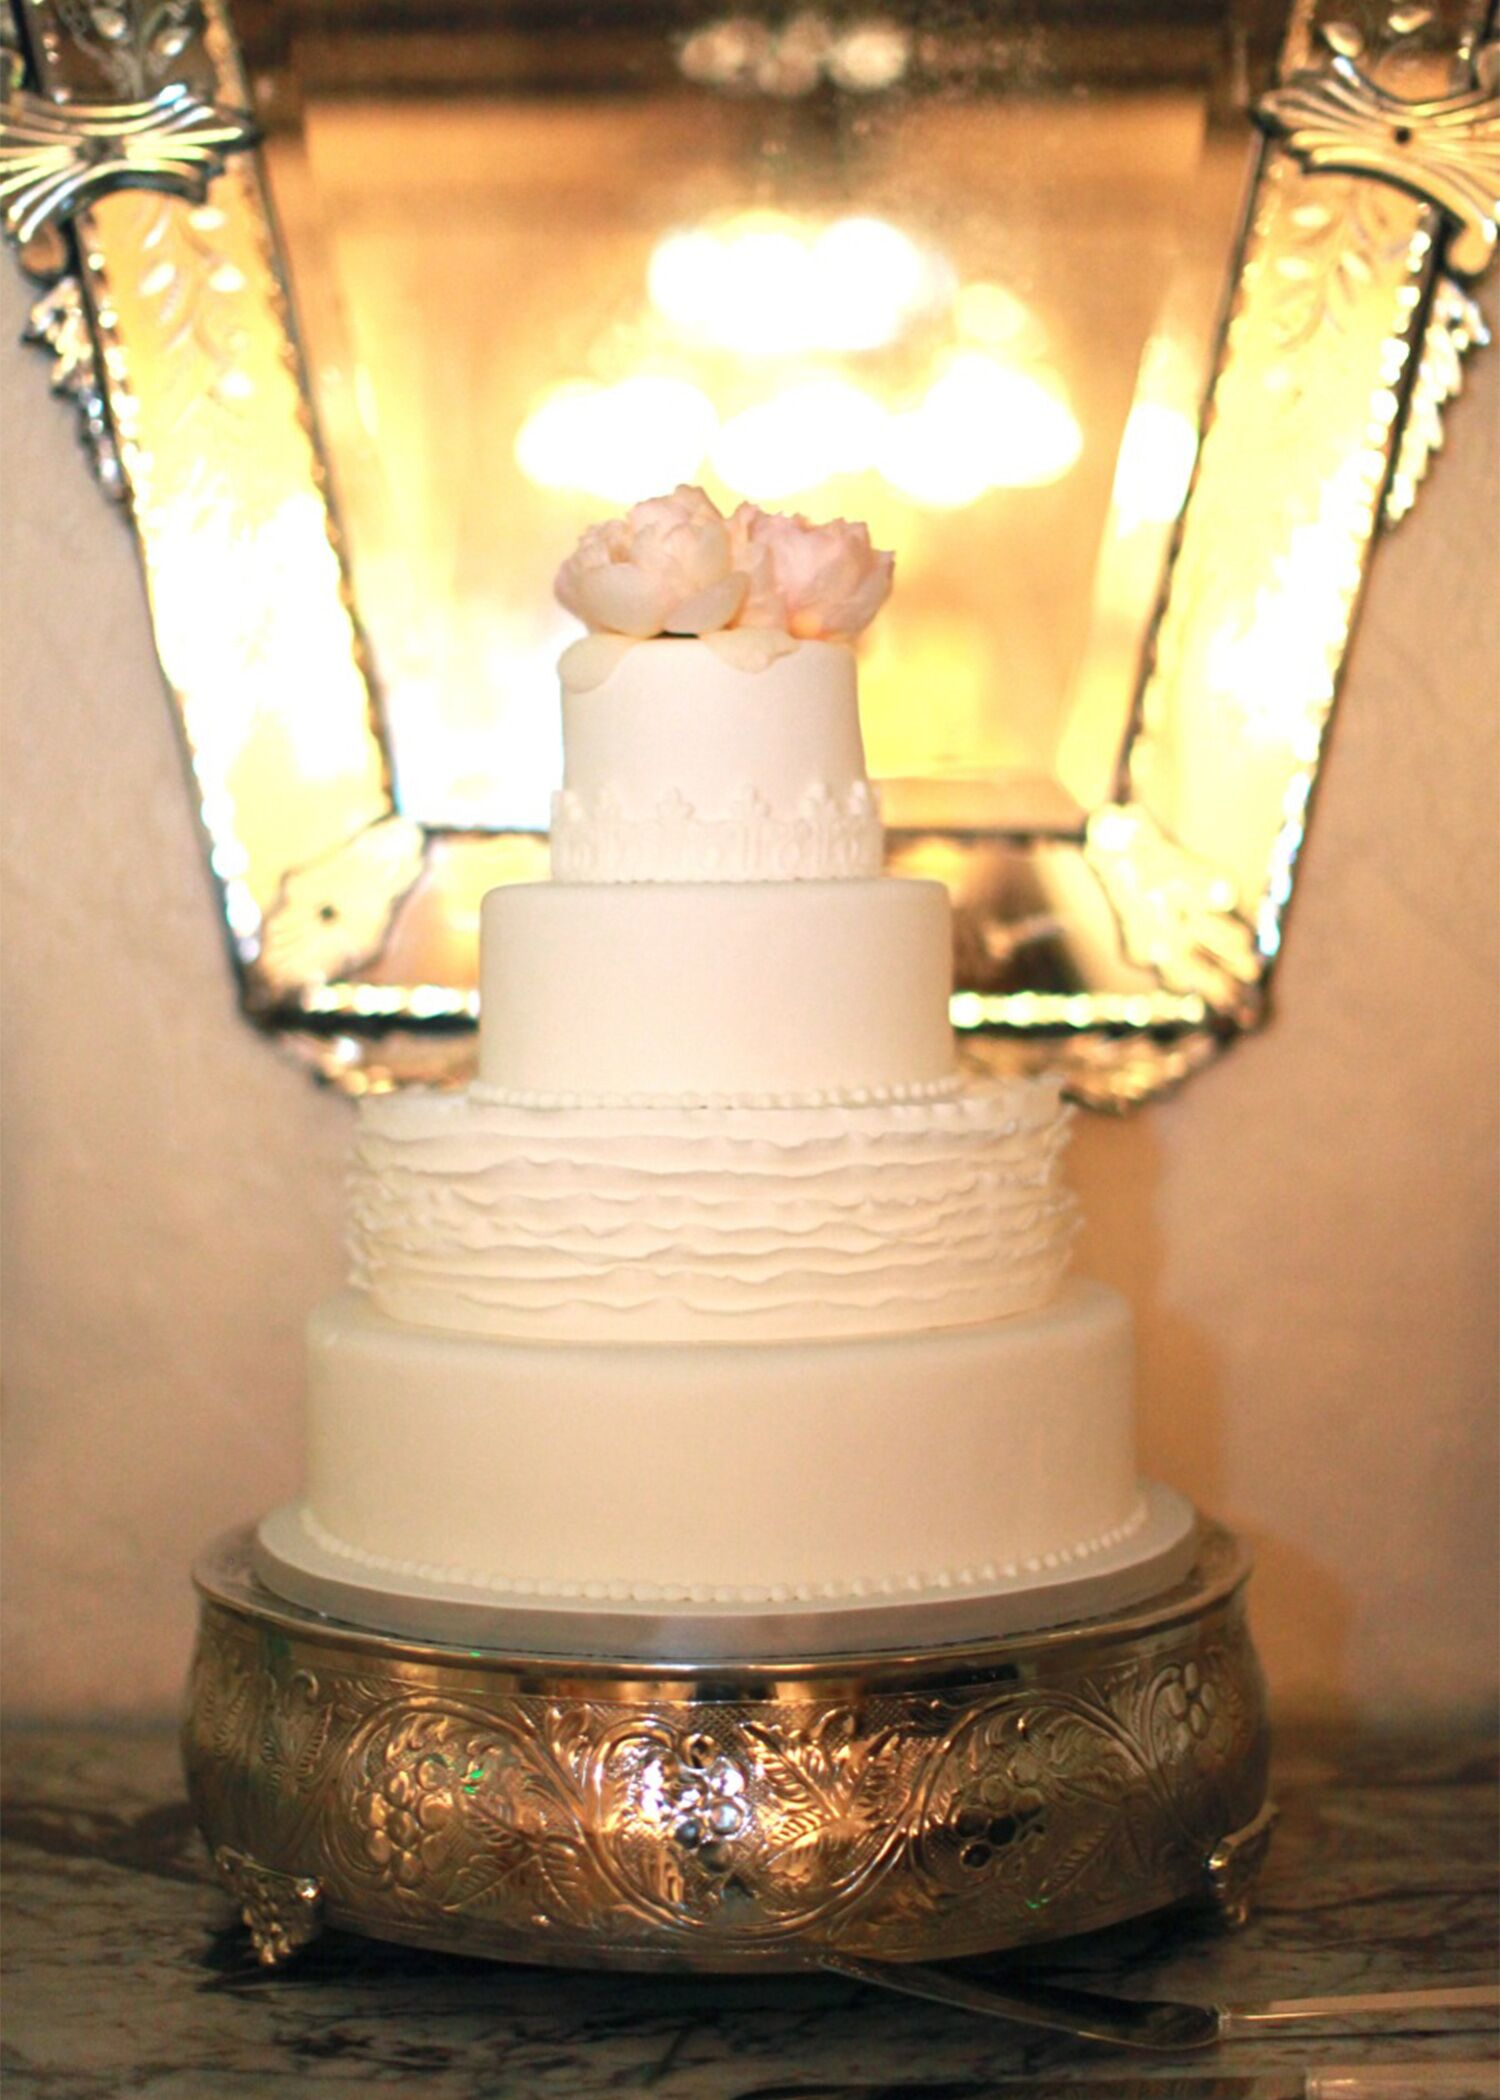 Wedding Cake Bakeries in Orlando, FL - The Knot